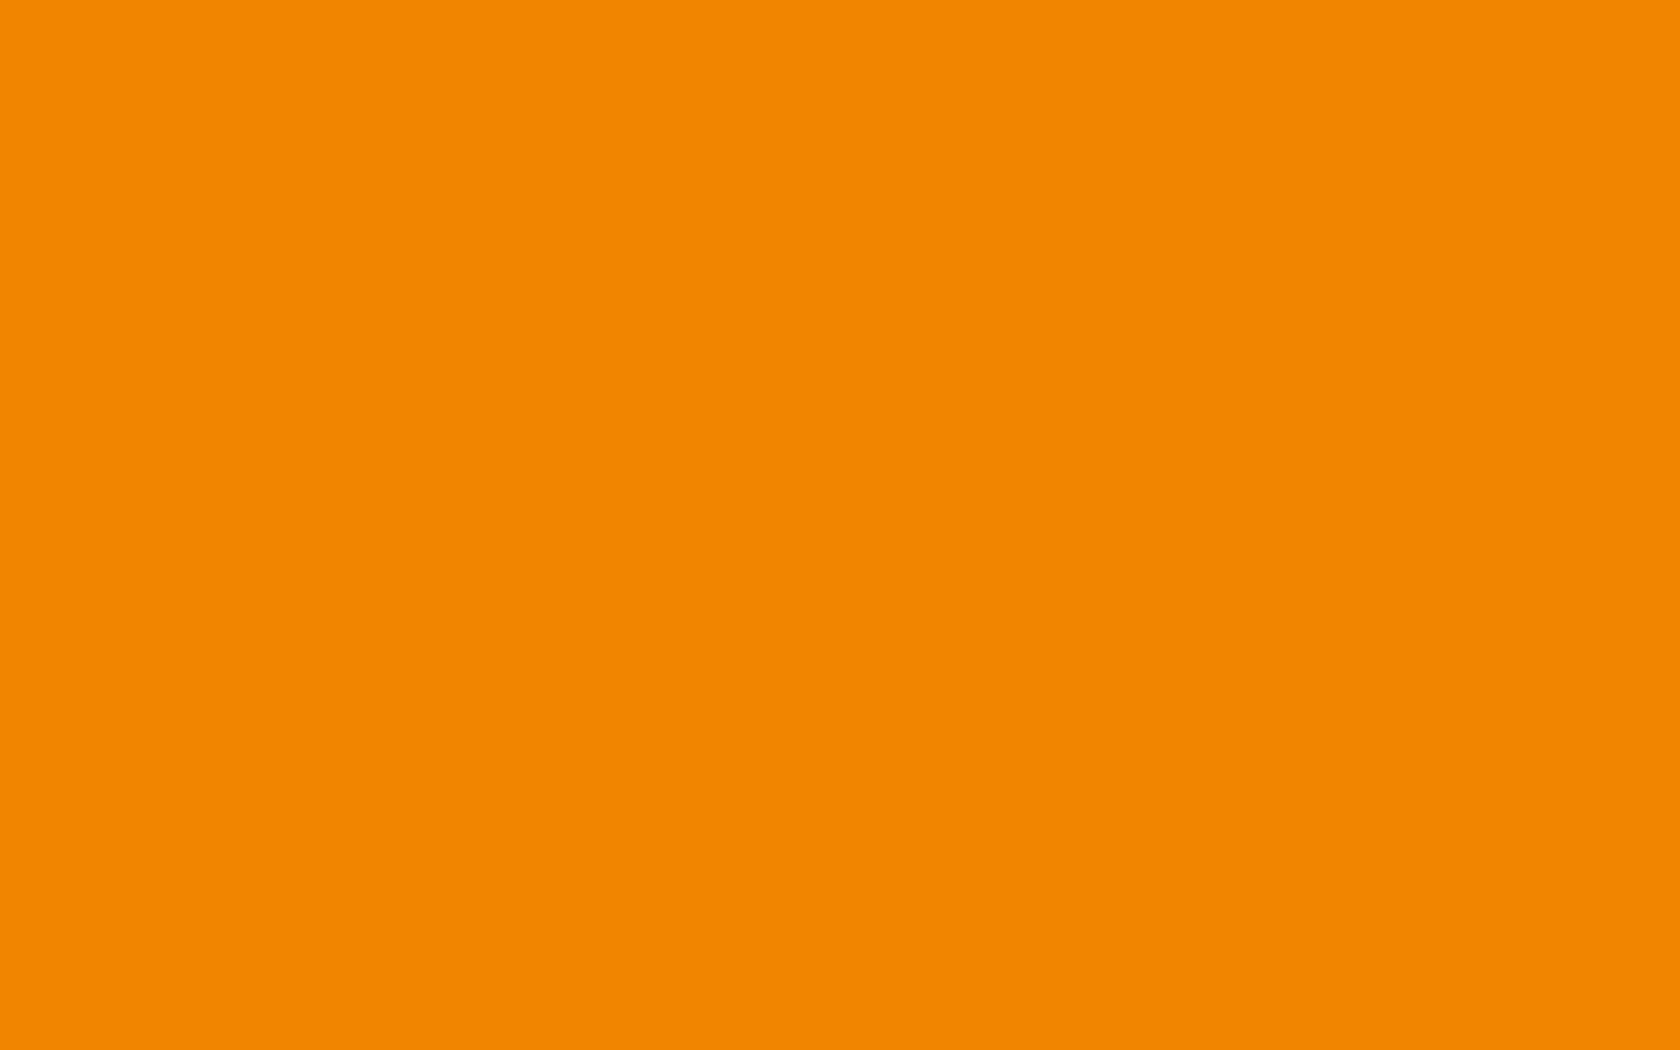 1680x1050 Tangerine Solid Color Background